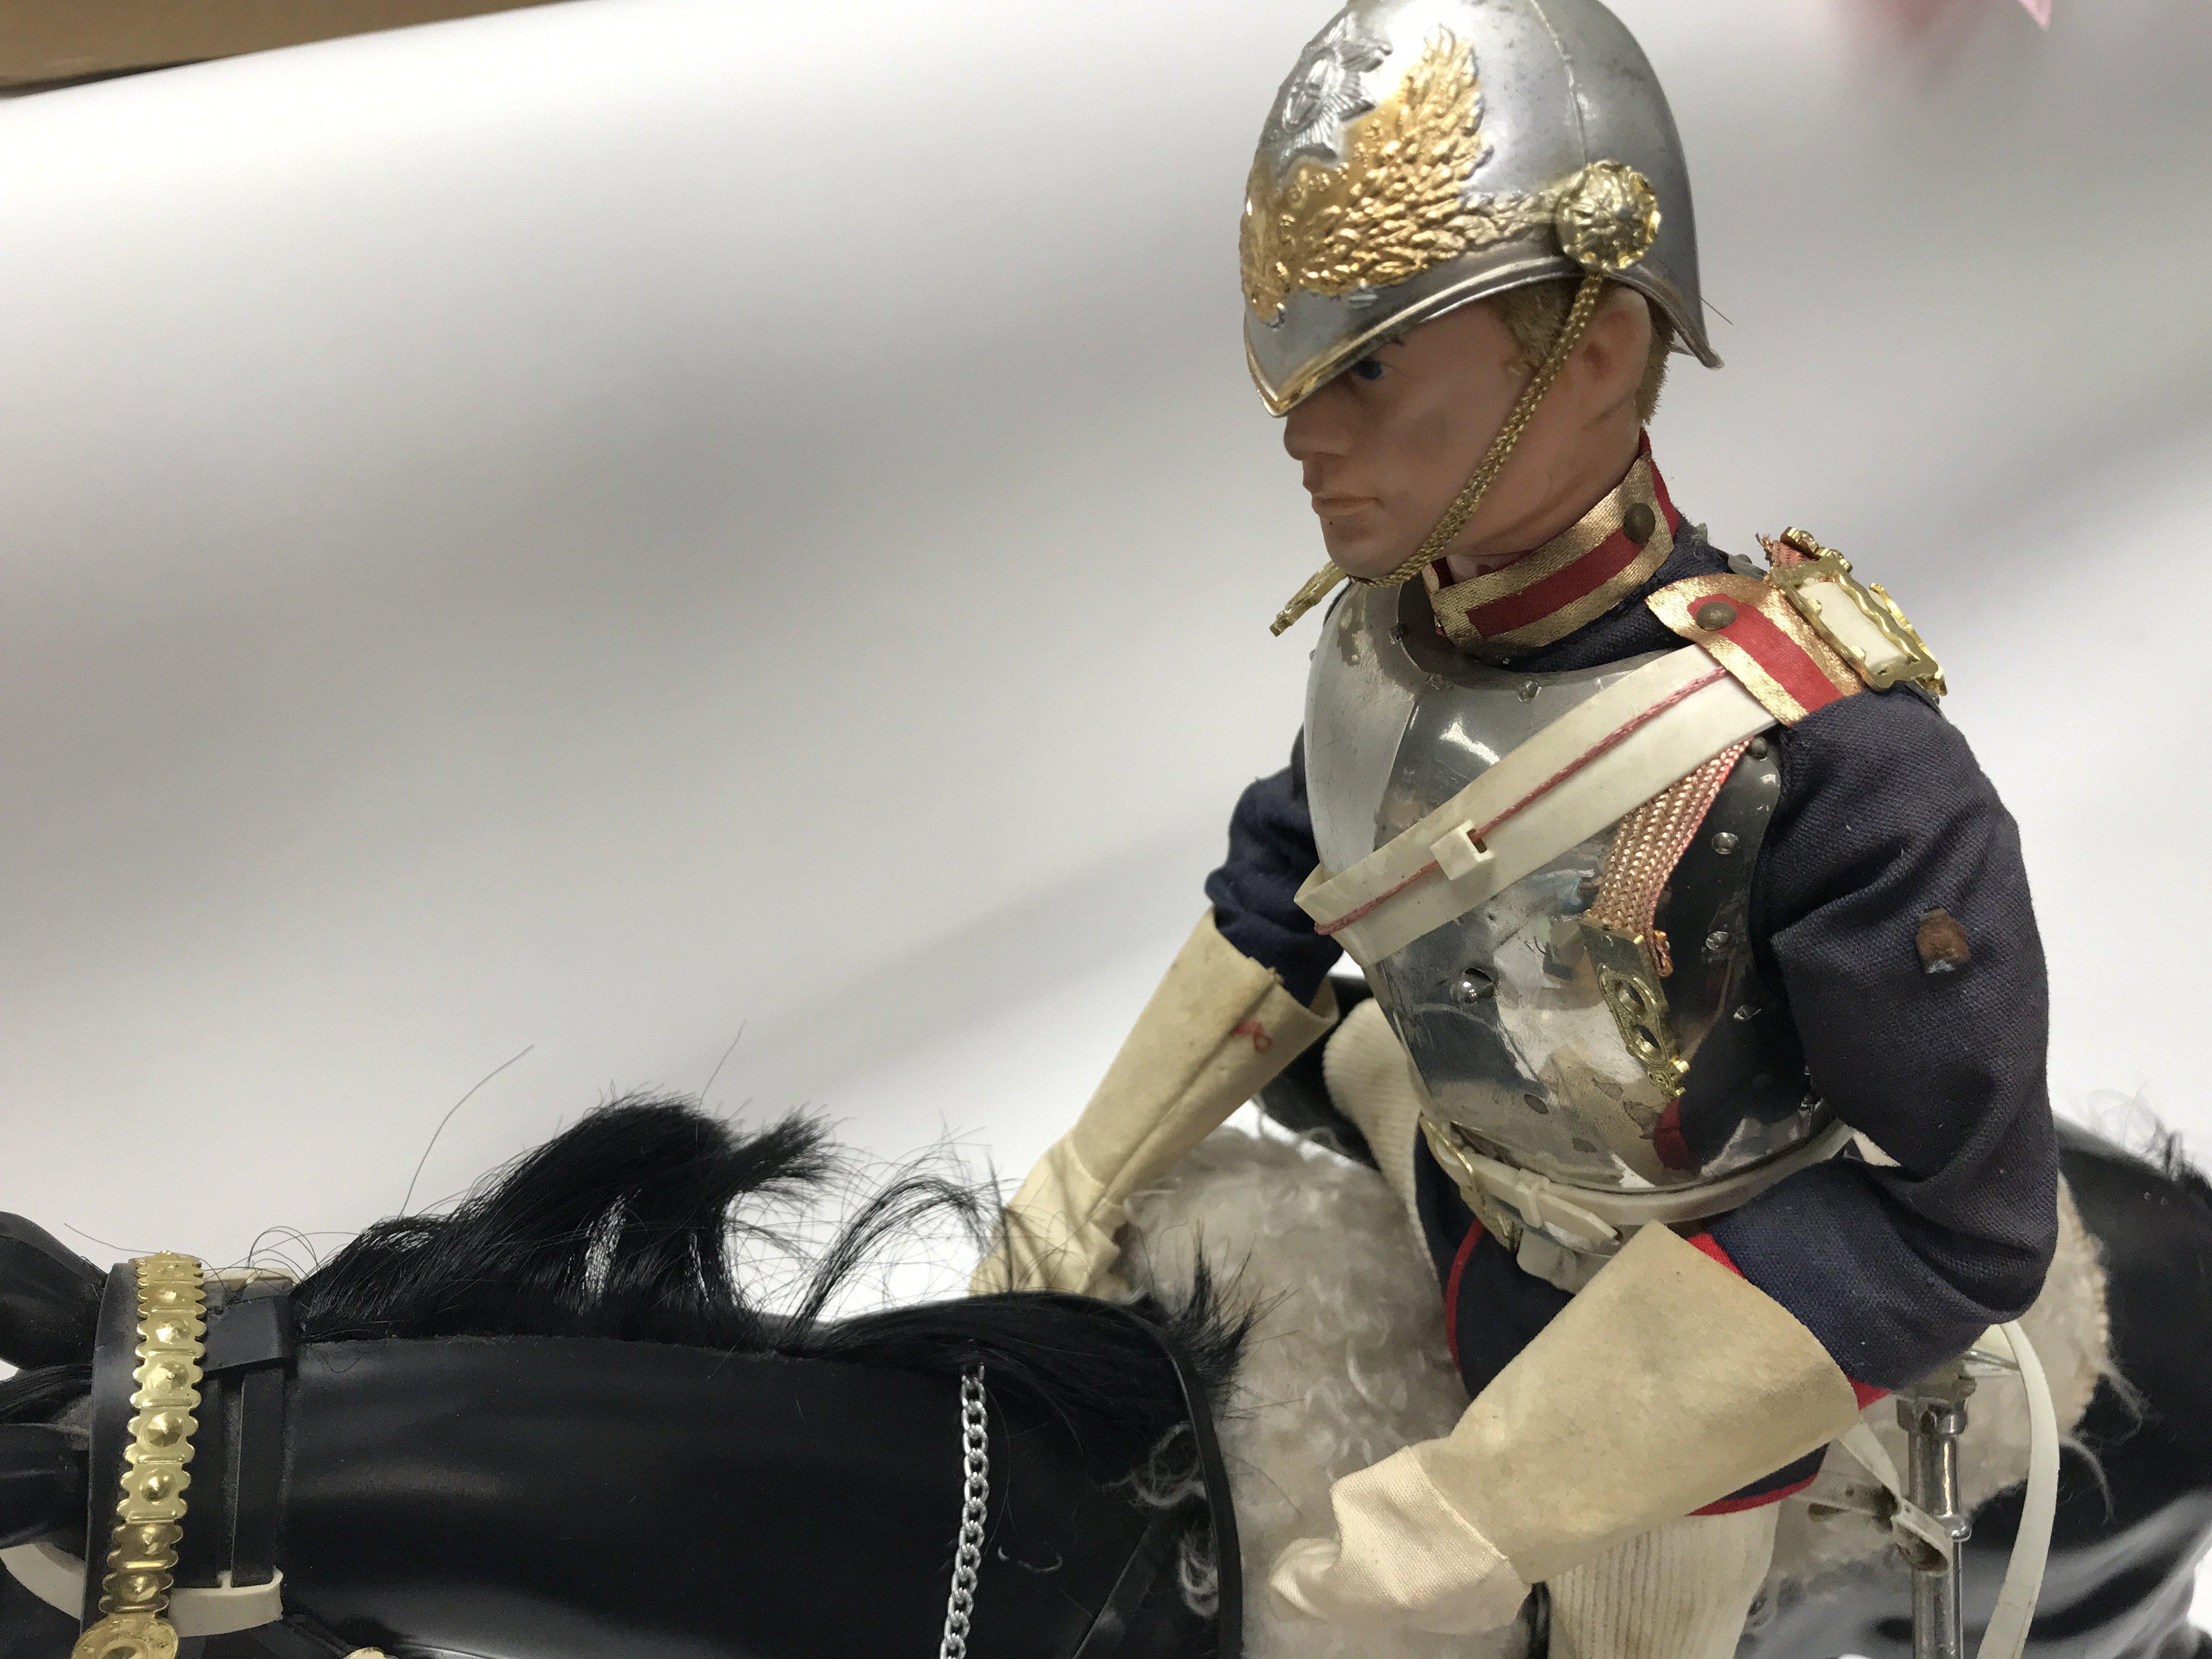 A Vintage Action Man in Blues and Royals Uniform, - Image 2 of 2